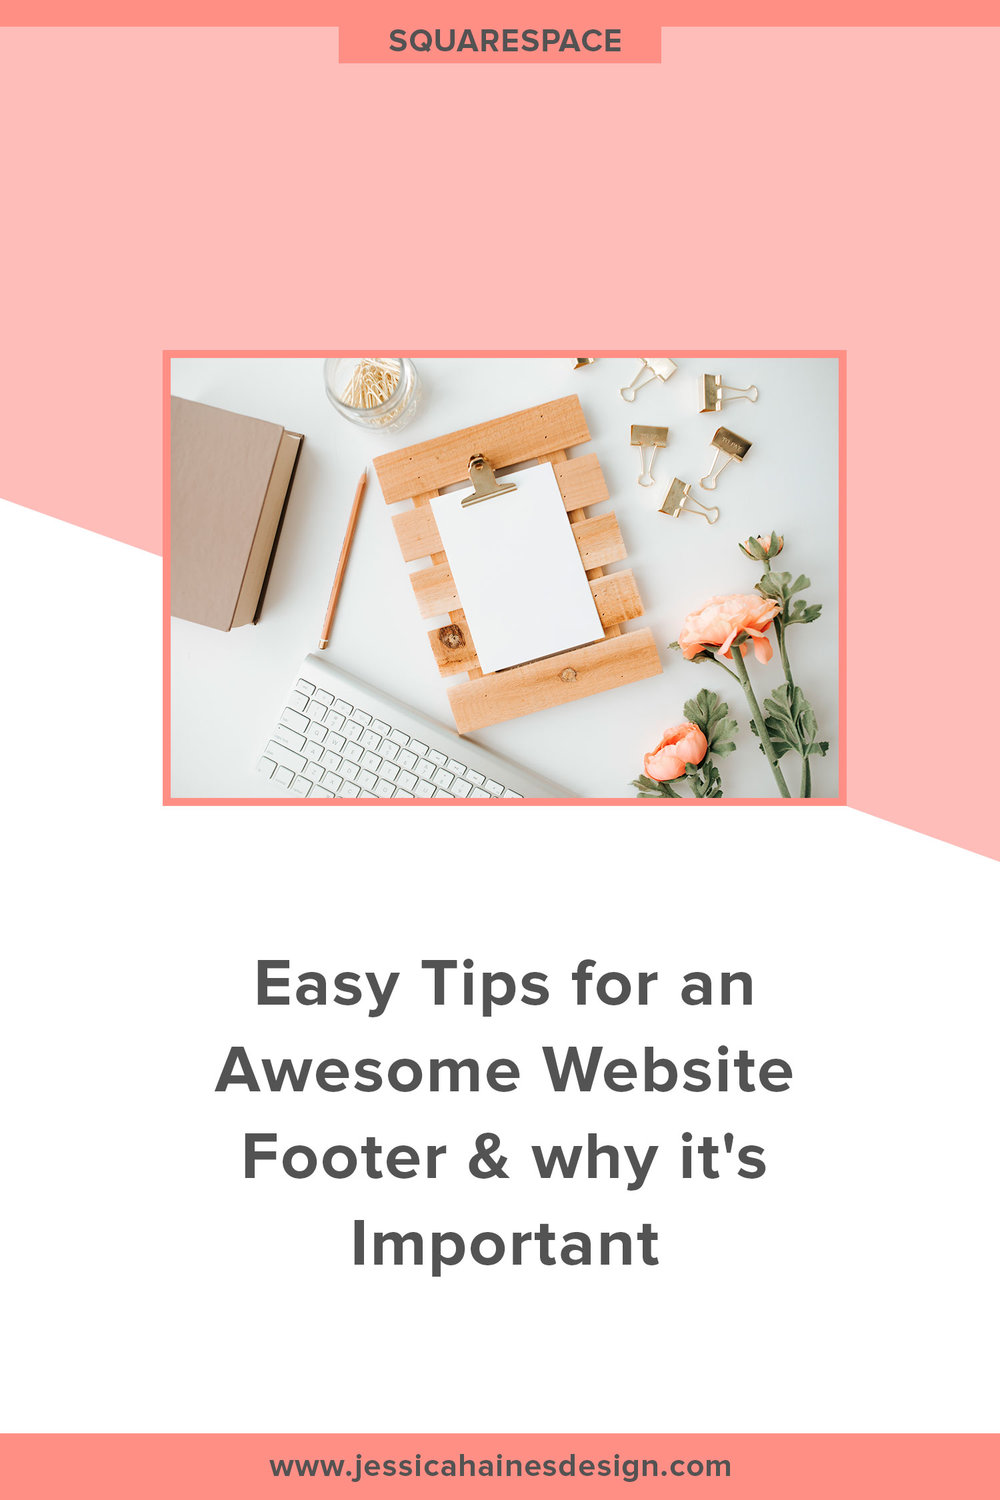 Your website footer is a key section on your website since it's visible on every page of your website and is highly likely to be seen. Are you making the most of your website footer? Although it's at the bottom of your website, it's often overlooked and underutilised, even though it's one of the hardest working spaces on your website. Click through to find the easy ways you can maximize your website footer today! | www.jessicahainesdesign.com